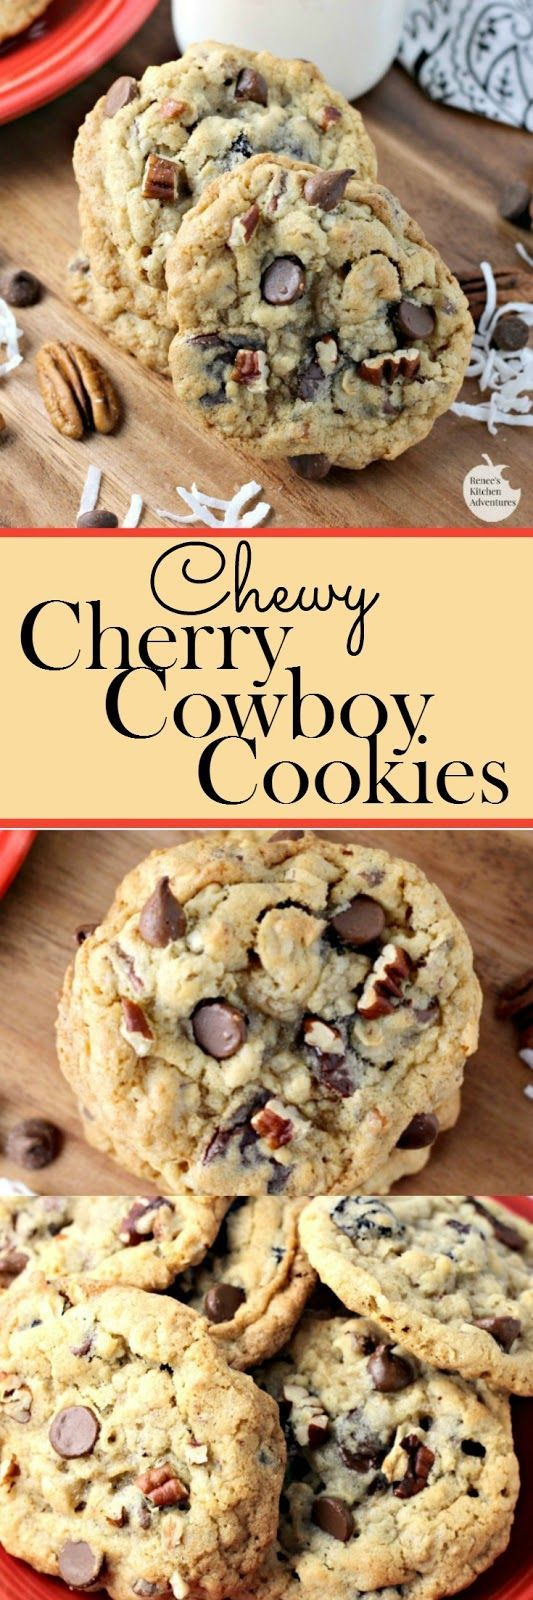 Chewy Cherry Cowboy Cookies | by Renee's Kitchen Adventures - cookie recipe for chewy cookies filled with chocolate, dried cherries, nuts, oats, and coconut! #RKArecipes #cookies